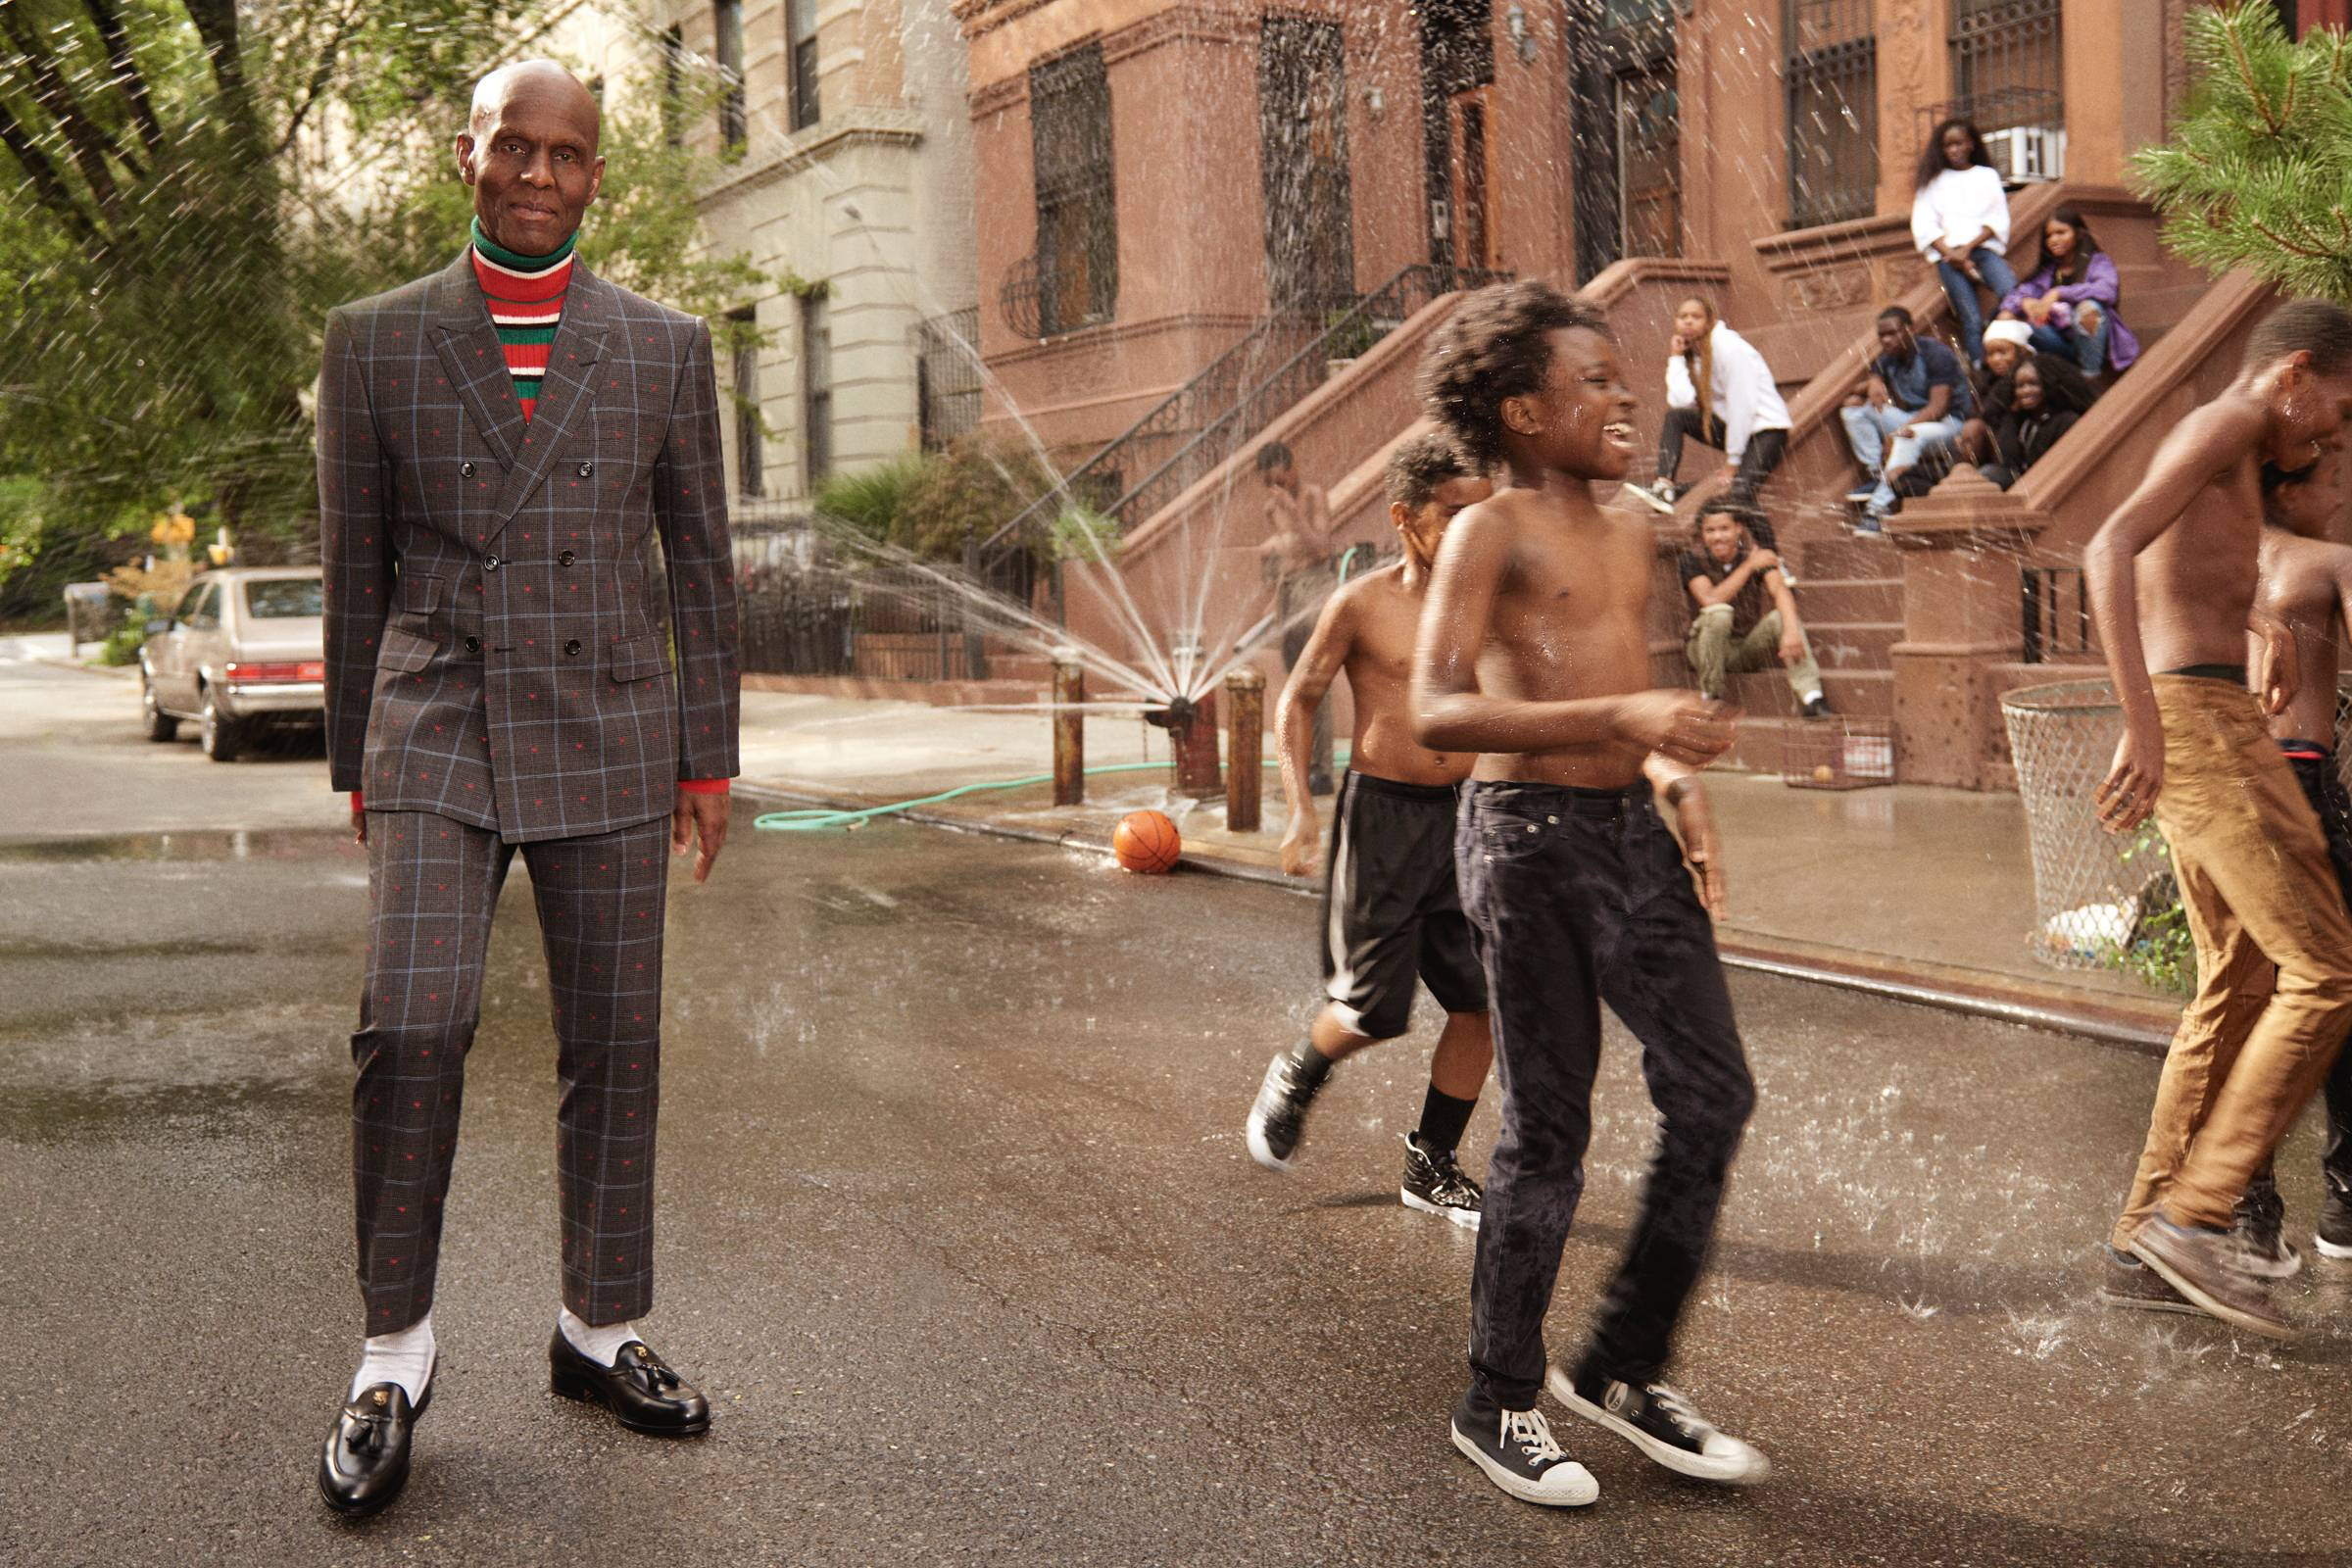 Harlem's King of Customs: The Life and Legacy of Dapper Dan